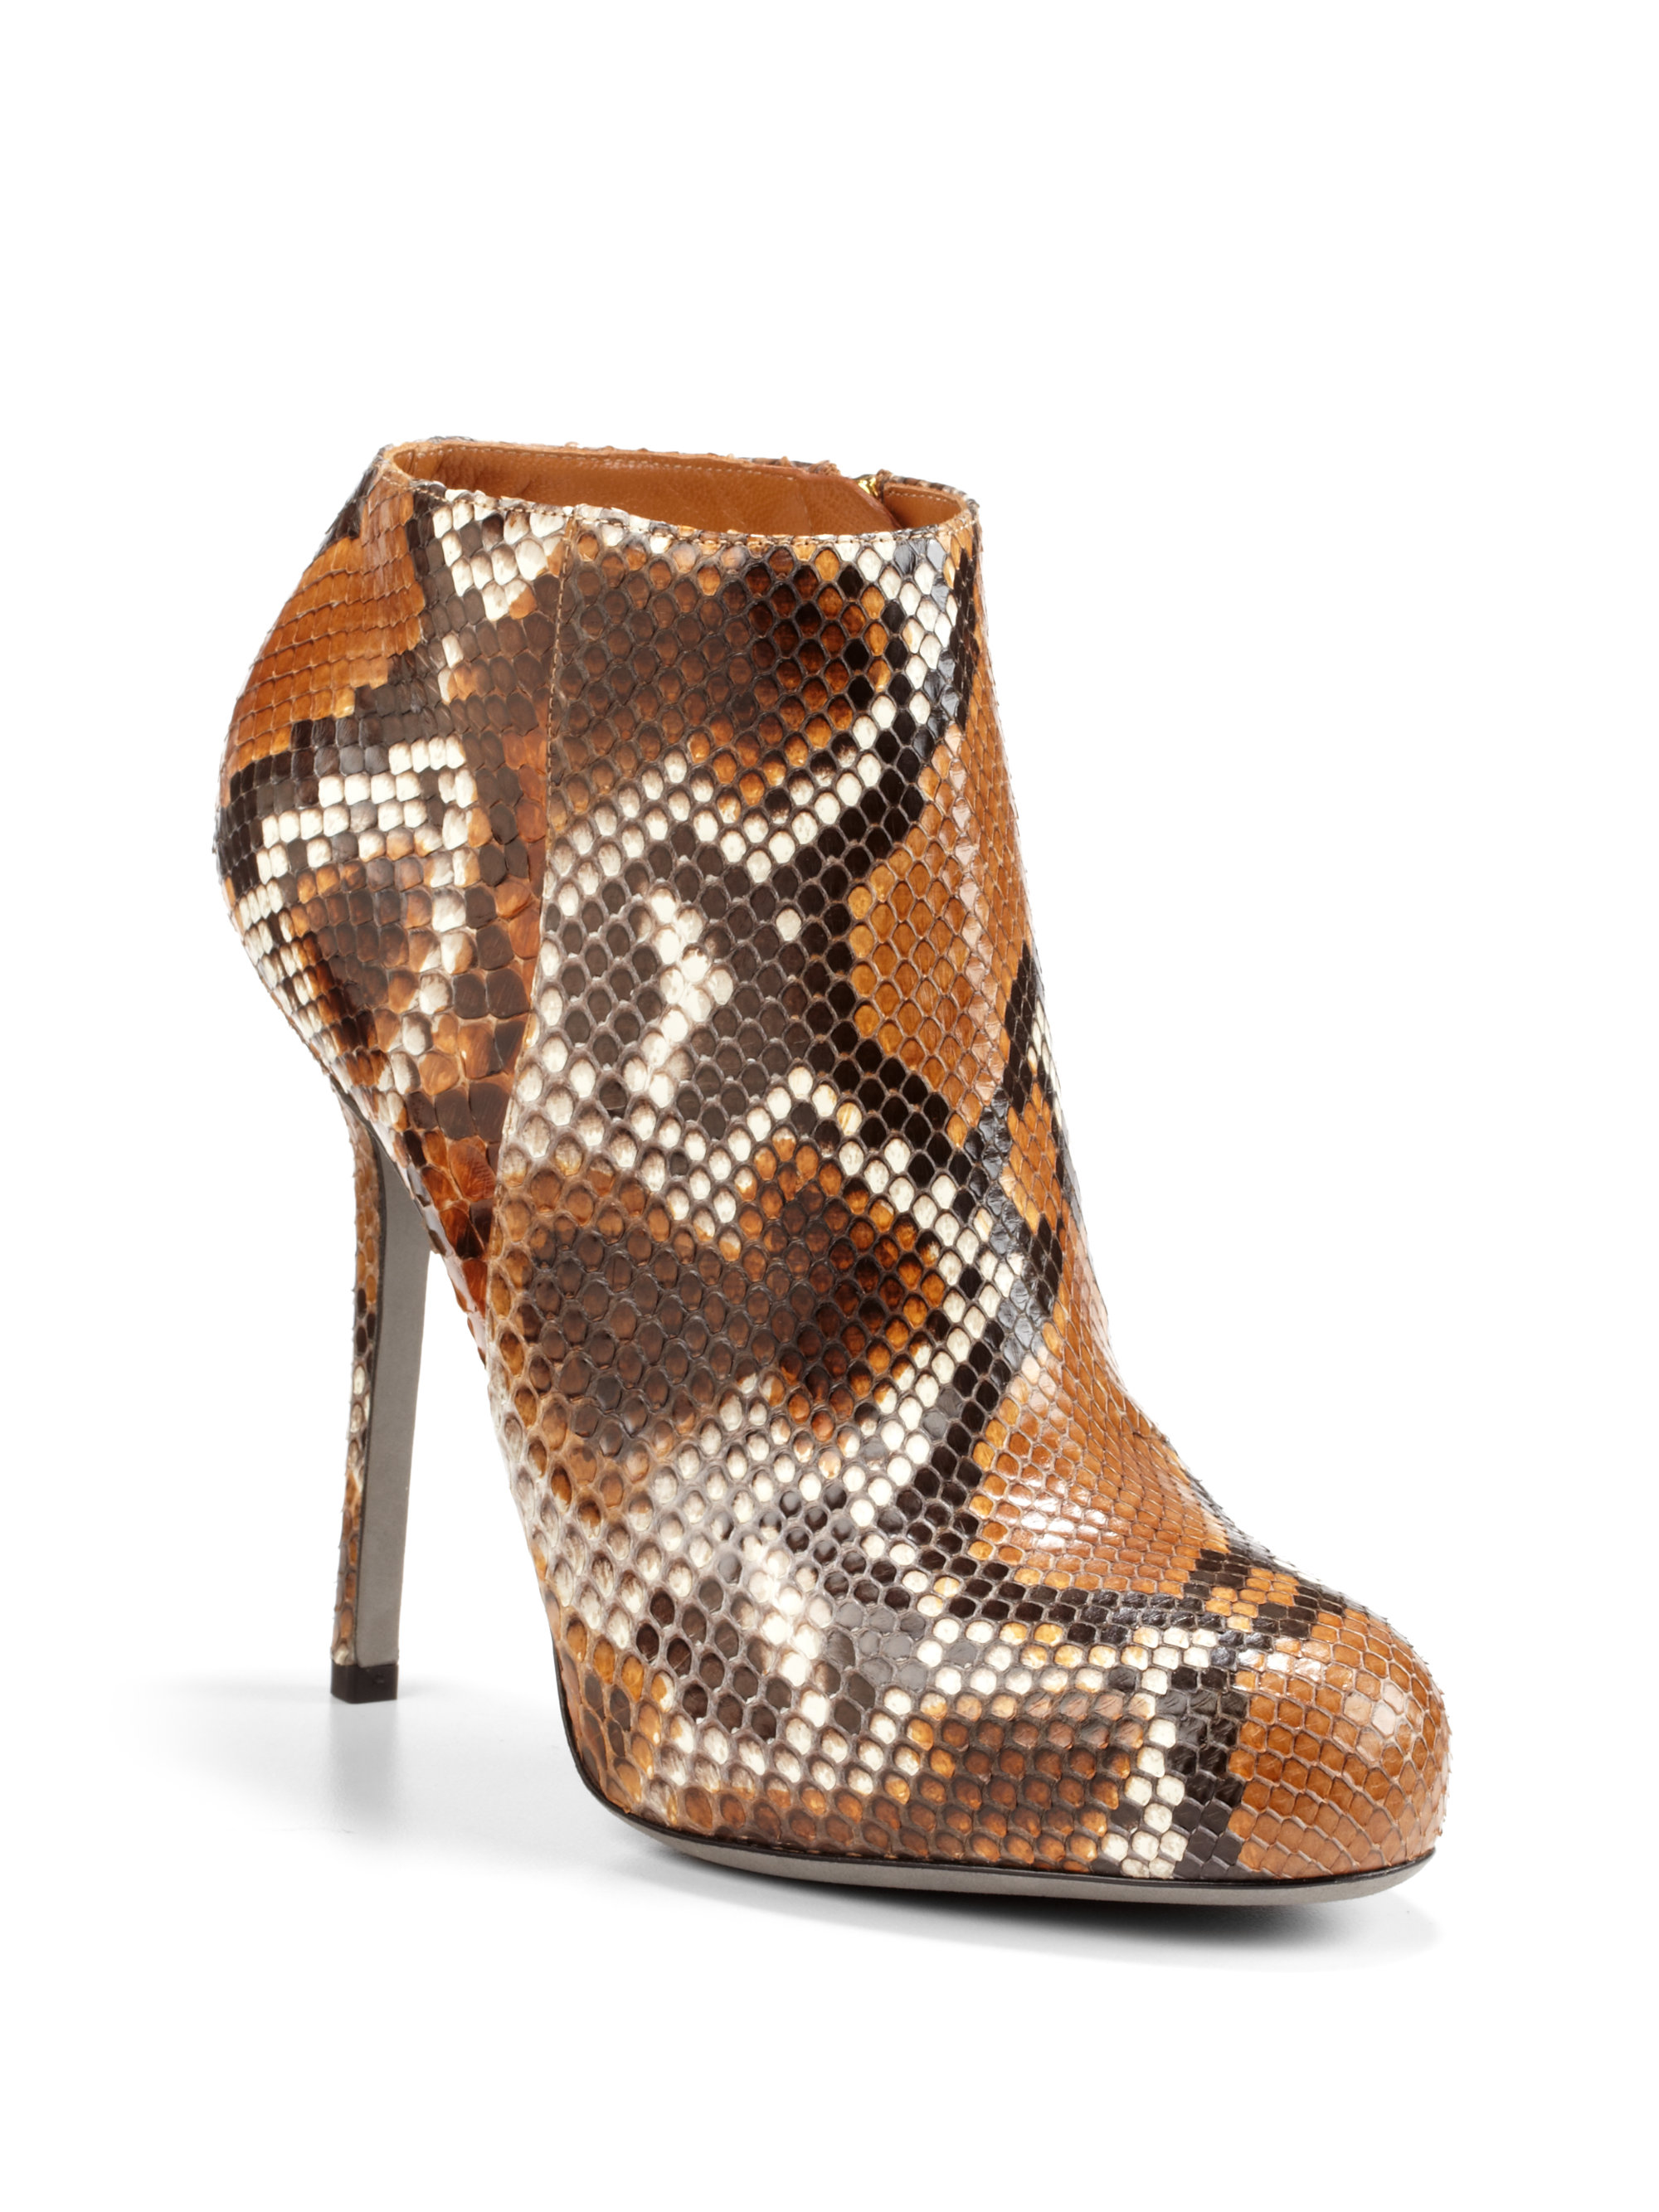 Sergio Rossi Python-Trimmed Ankle Boots sale authentic CyNrZrU45